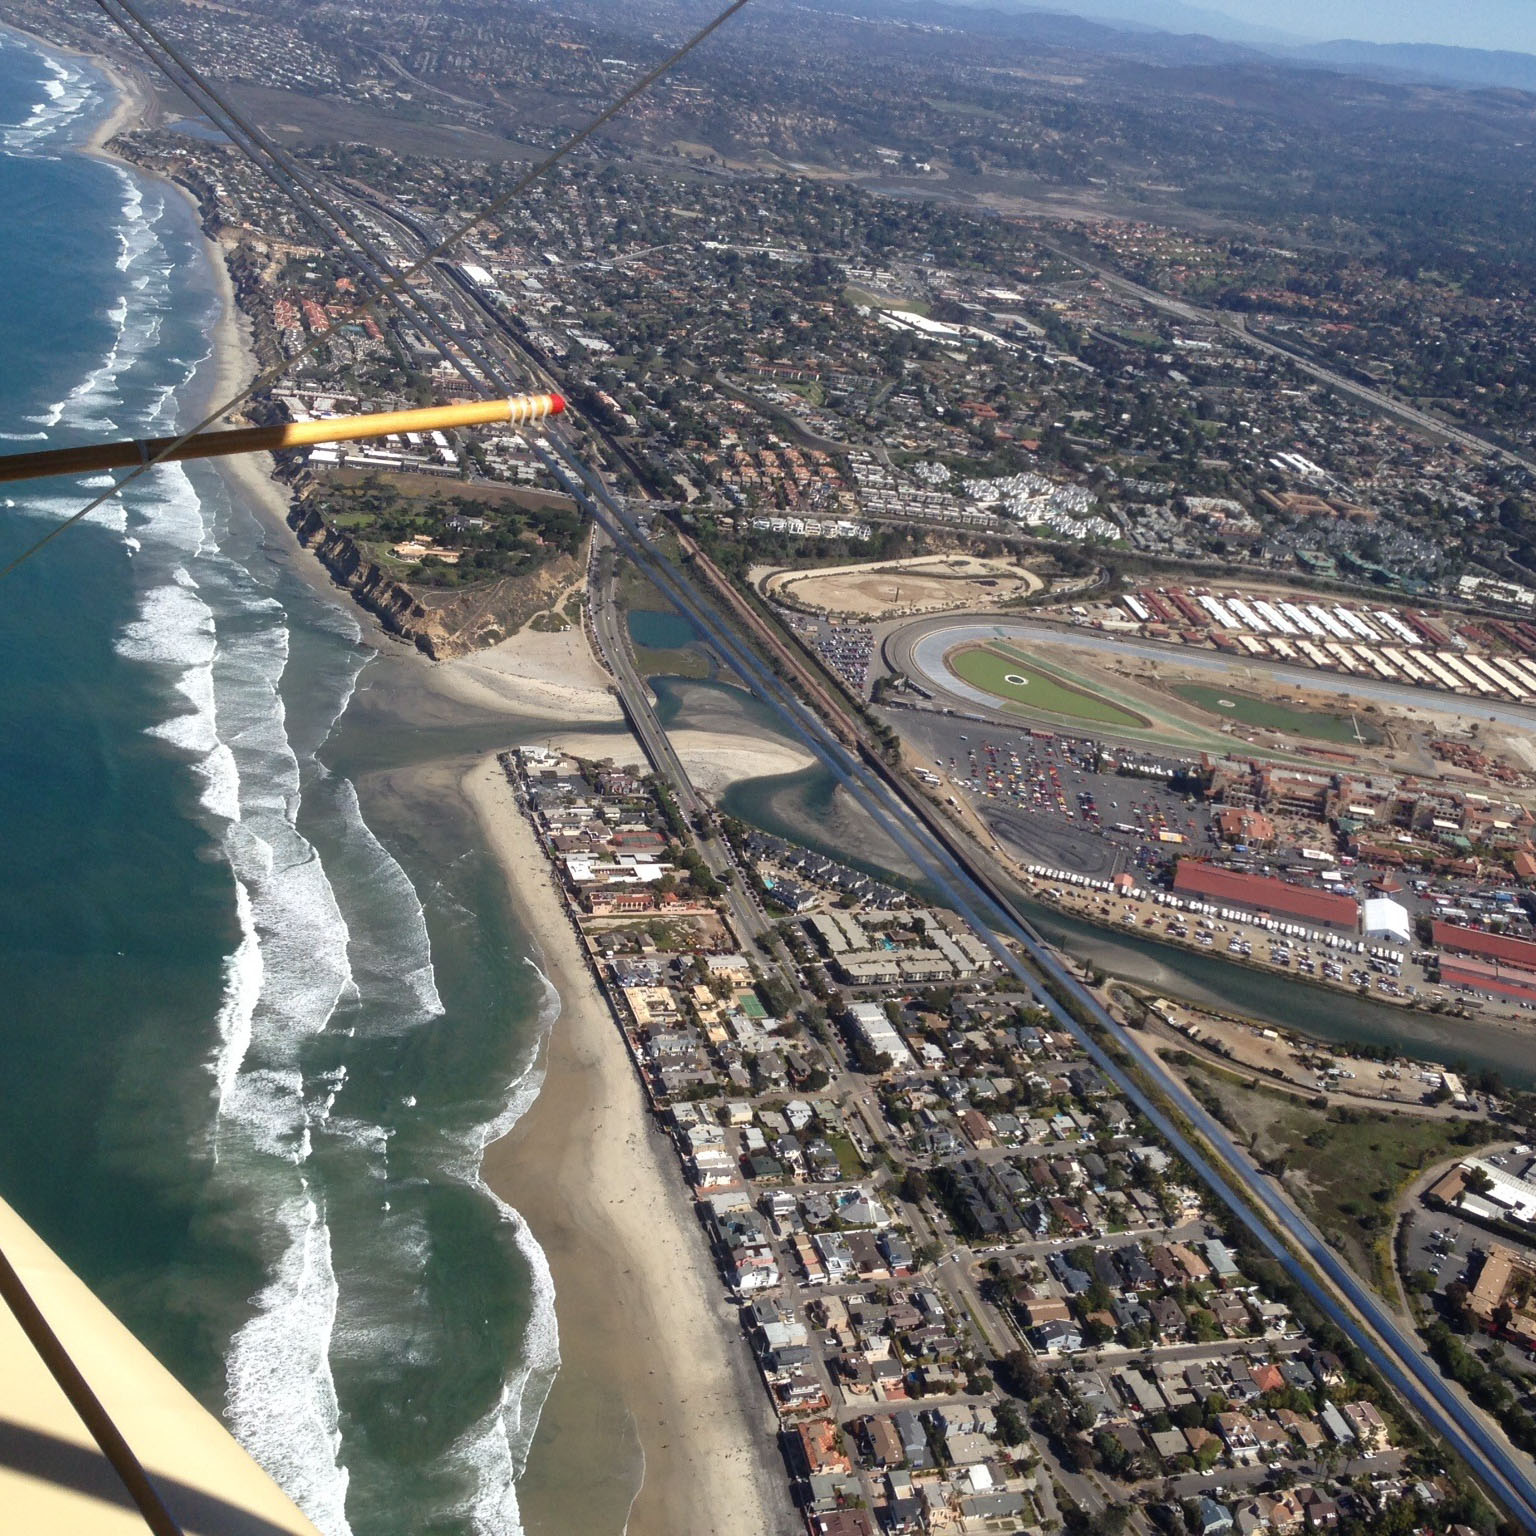 Fun Flights biplane rides over the coast and beach from